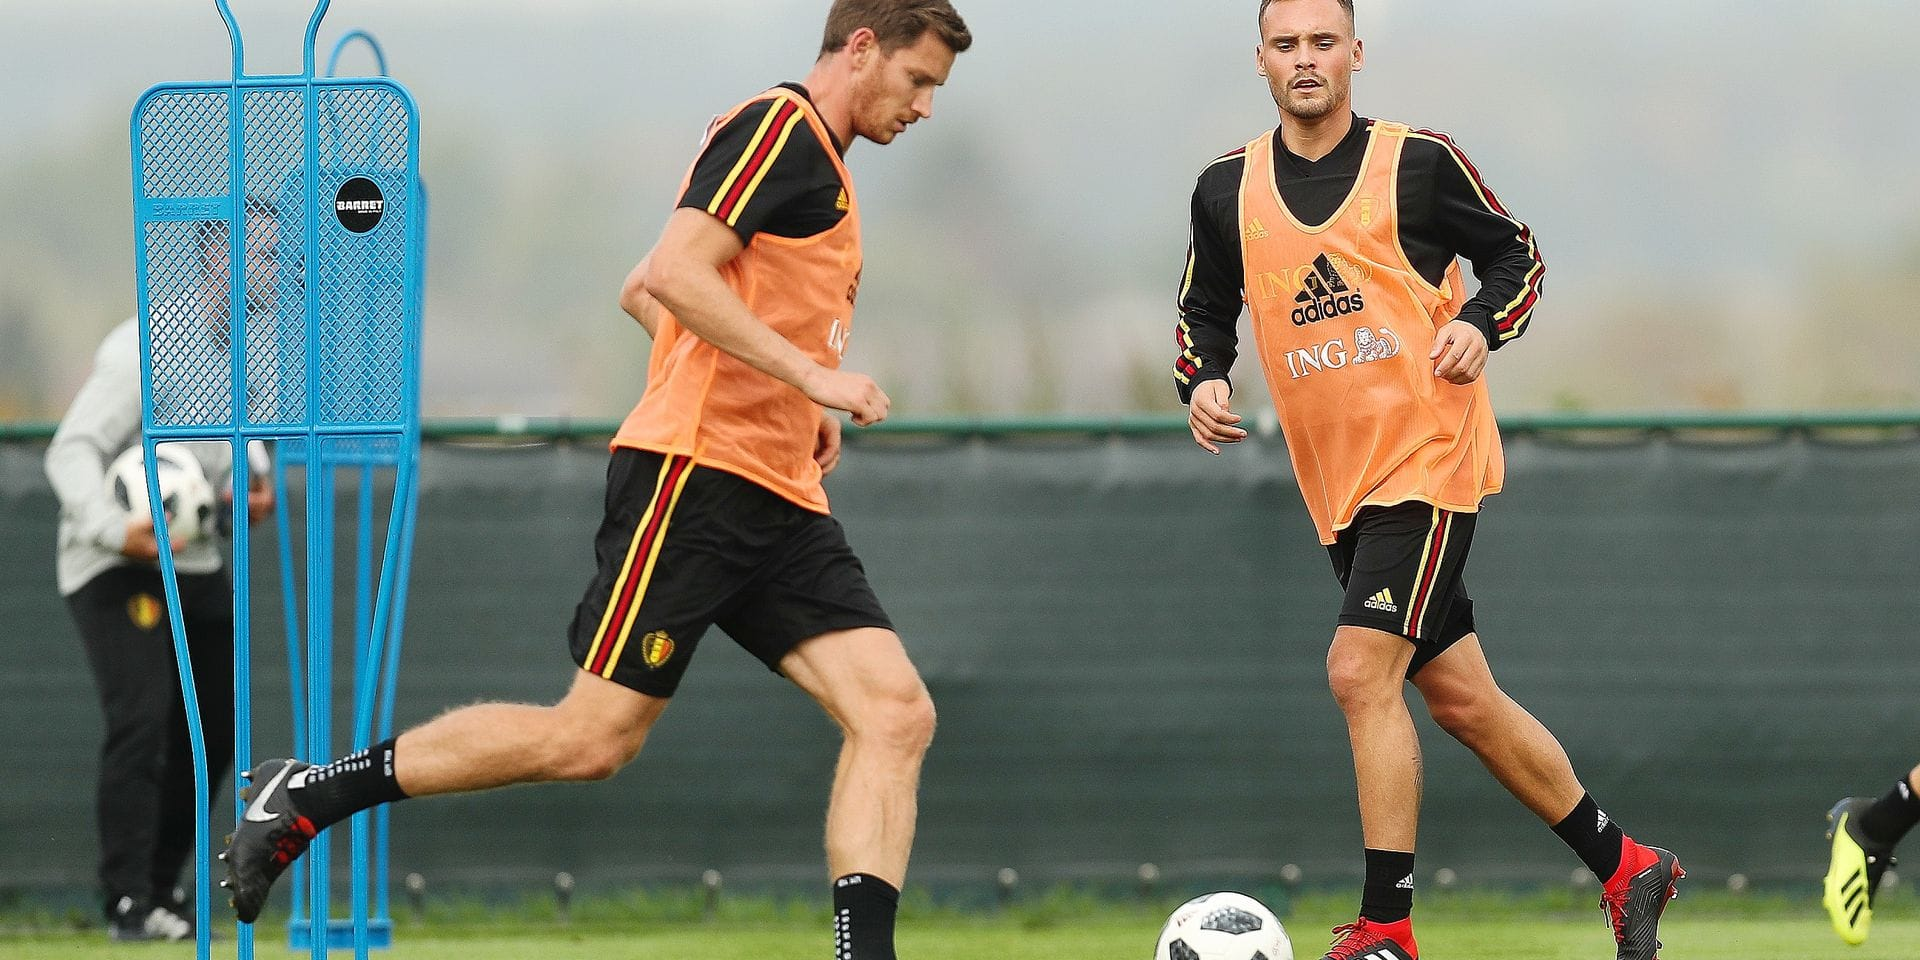 Belgium's Jan Vertonghen and Belgium's Birger Verstraete pictured during a training session of Belgian national soccer team the Red Devils in Tubize, Tuesday 04 September 2018. The team is preparing for a friendly match against Scotland on 07 September and the UEFA Nations League match against Iceland on 11 September. BELGA PHOTO BRUNO FAHY